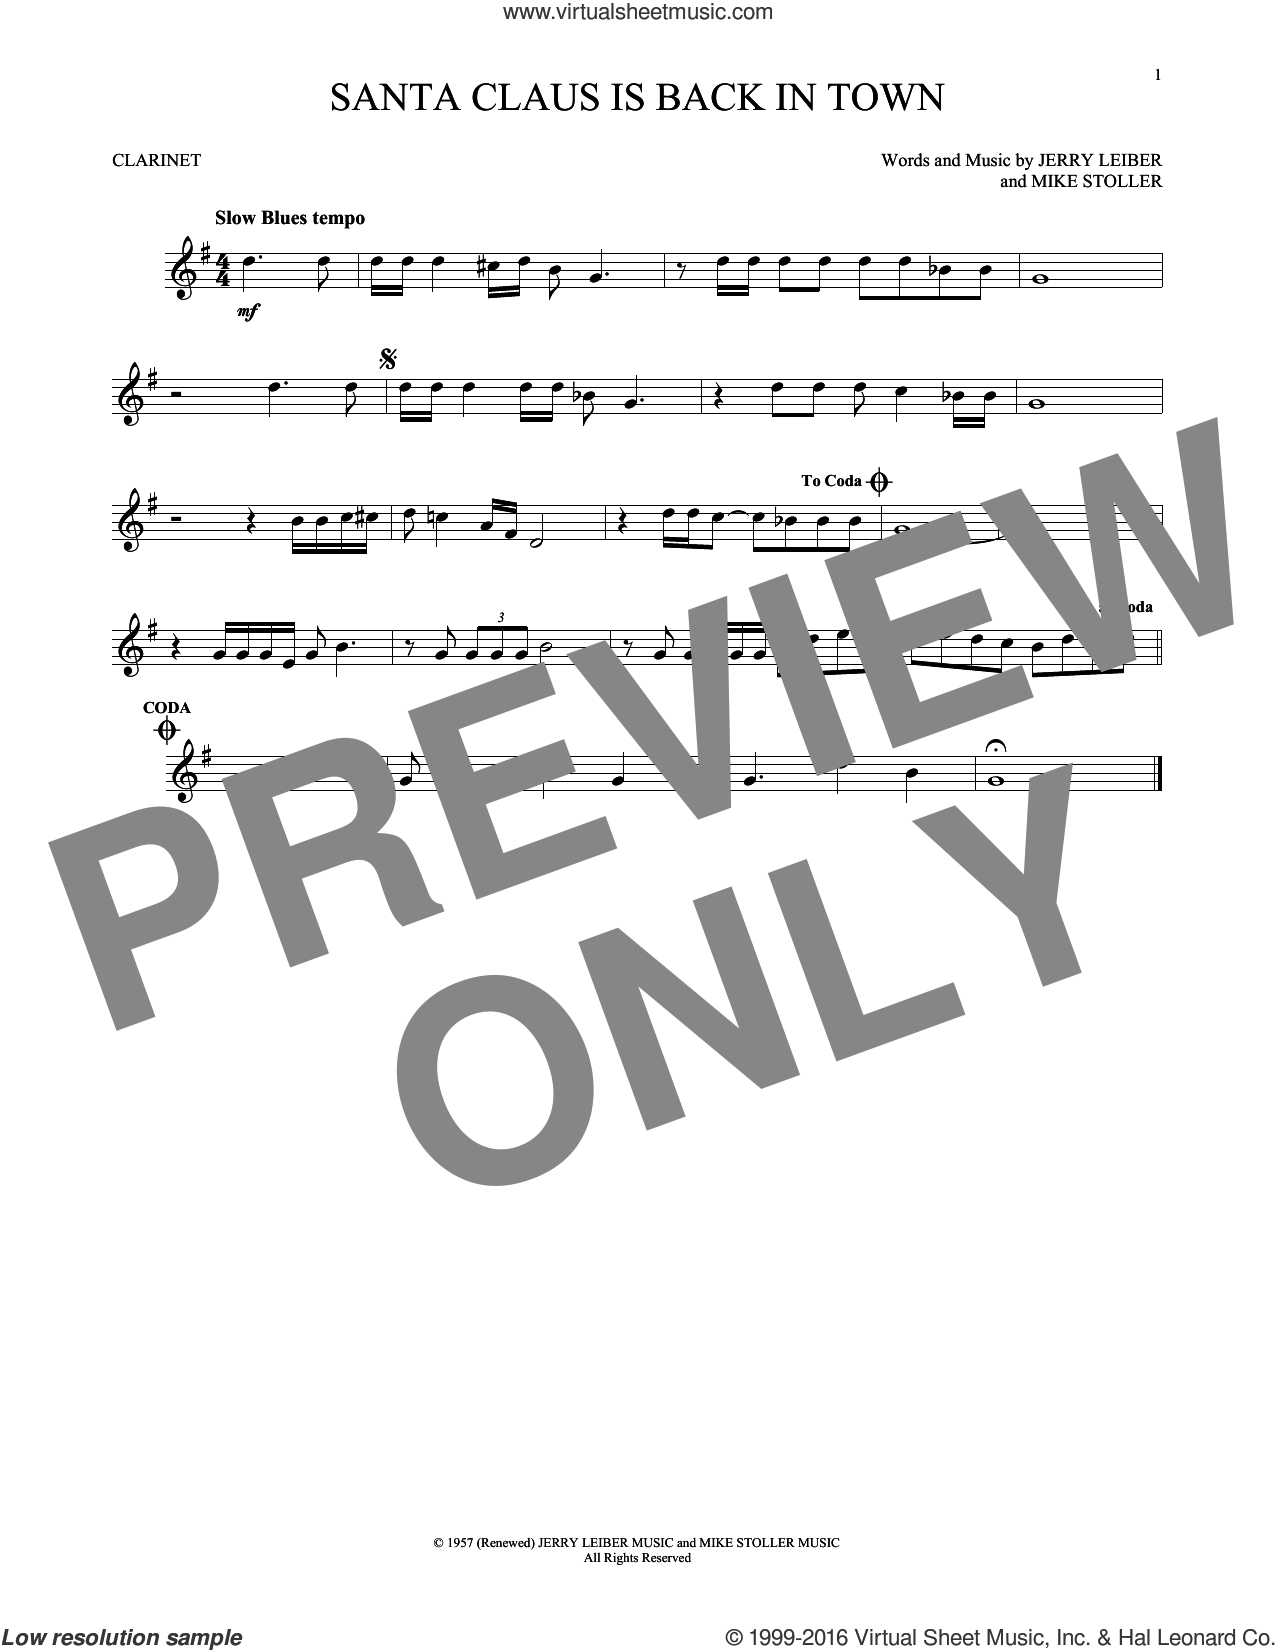 Santa Claus Is Back In Town sheet music for clarinet solo by Elvis Presley, Jerry Leiber and Mike Stoller, intermediate skill level